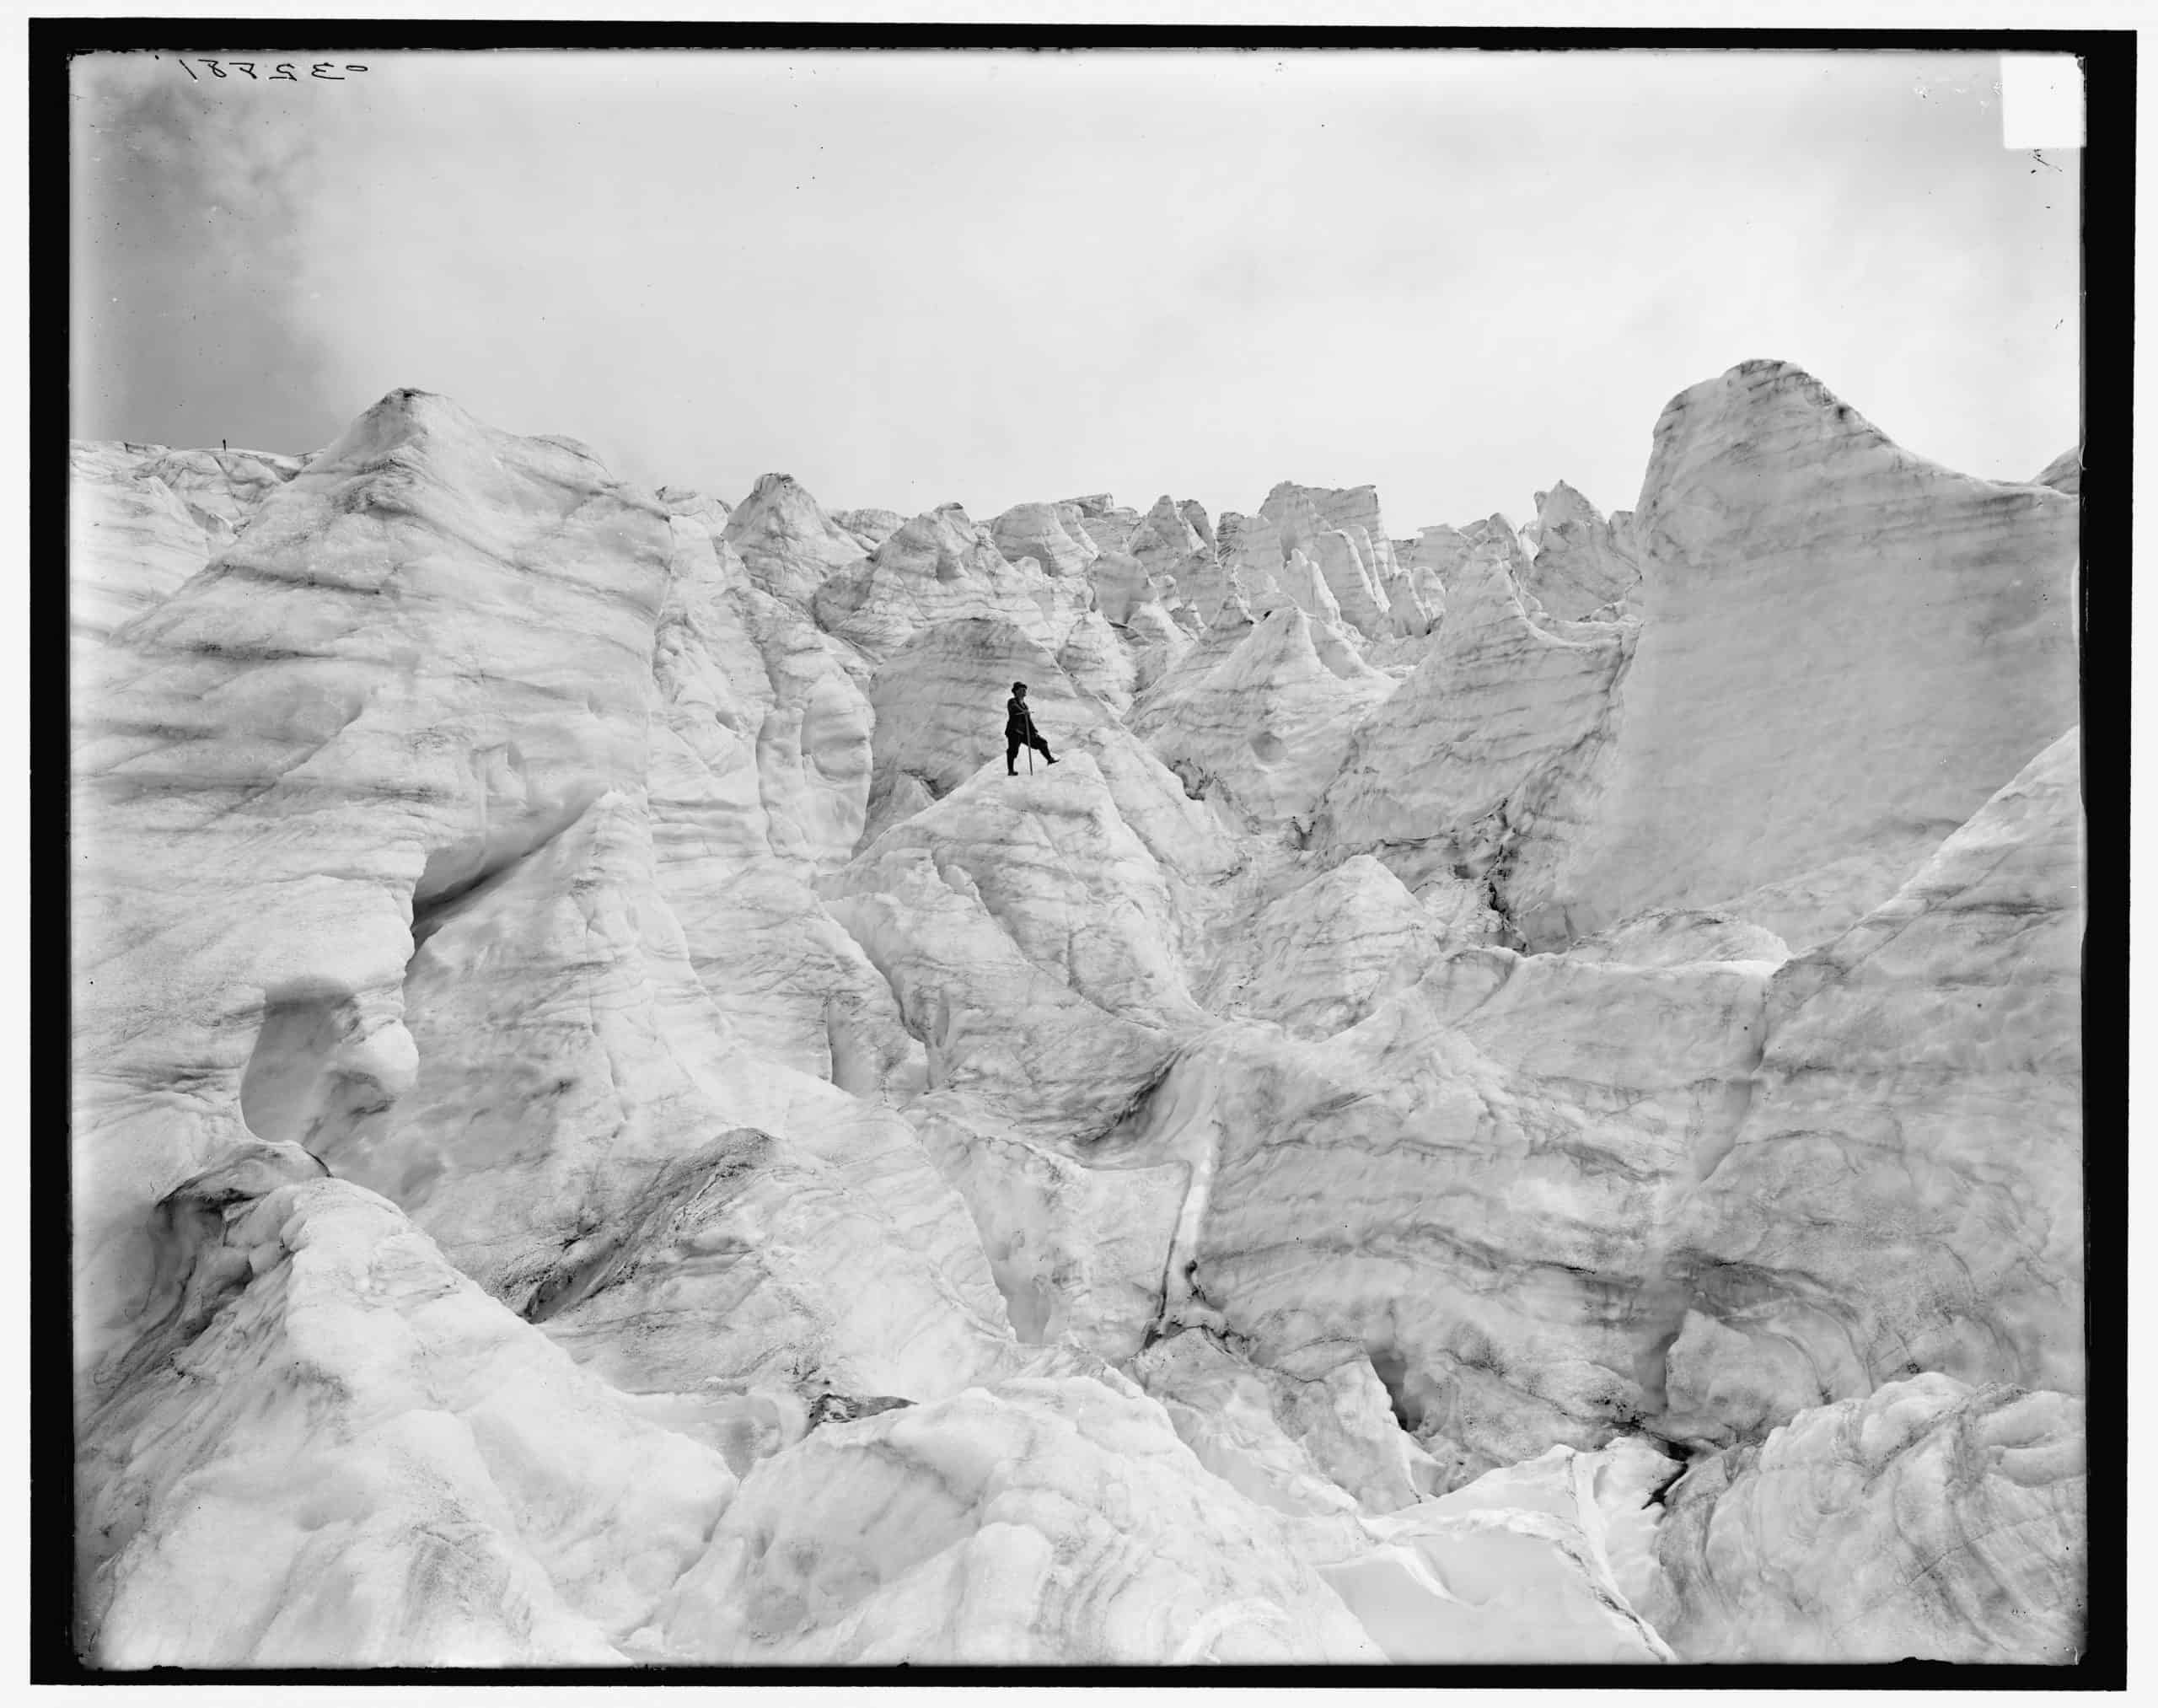 Illecillewaet Glacier from Seracs, Selkirk Mts., British Columbia, Detroit Publishing Co., between 1900 and 1910